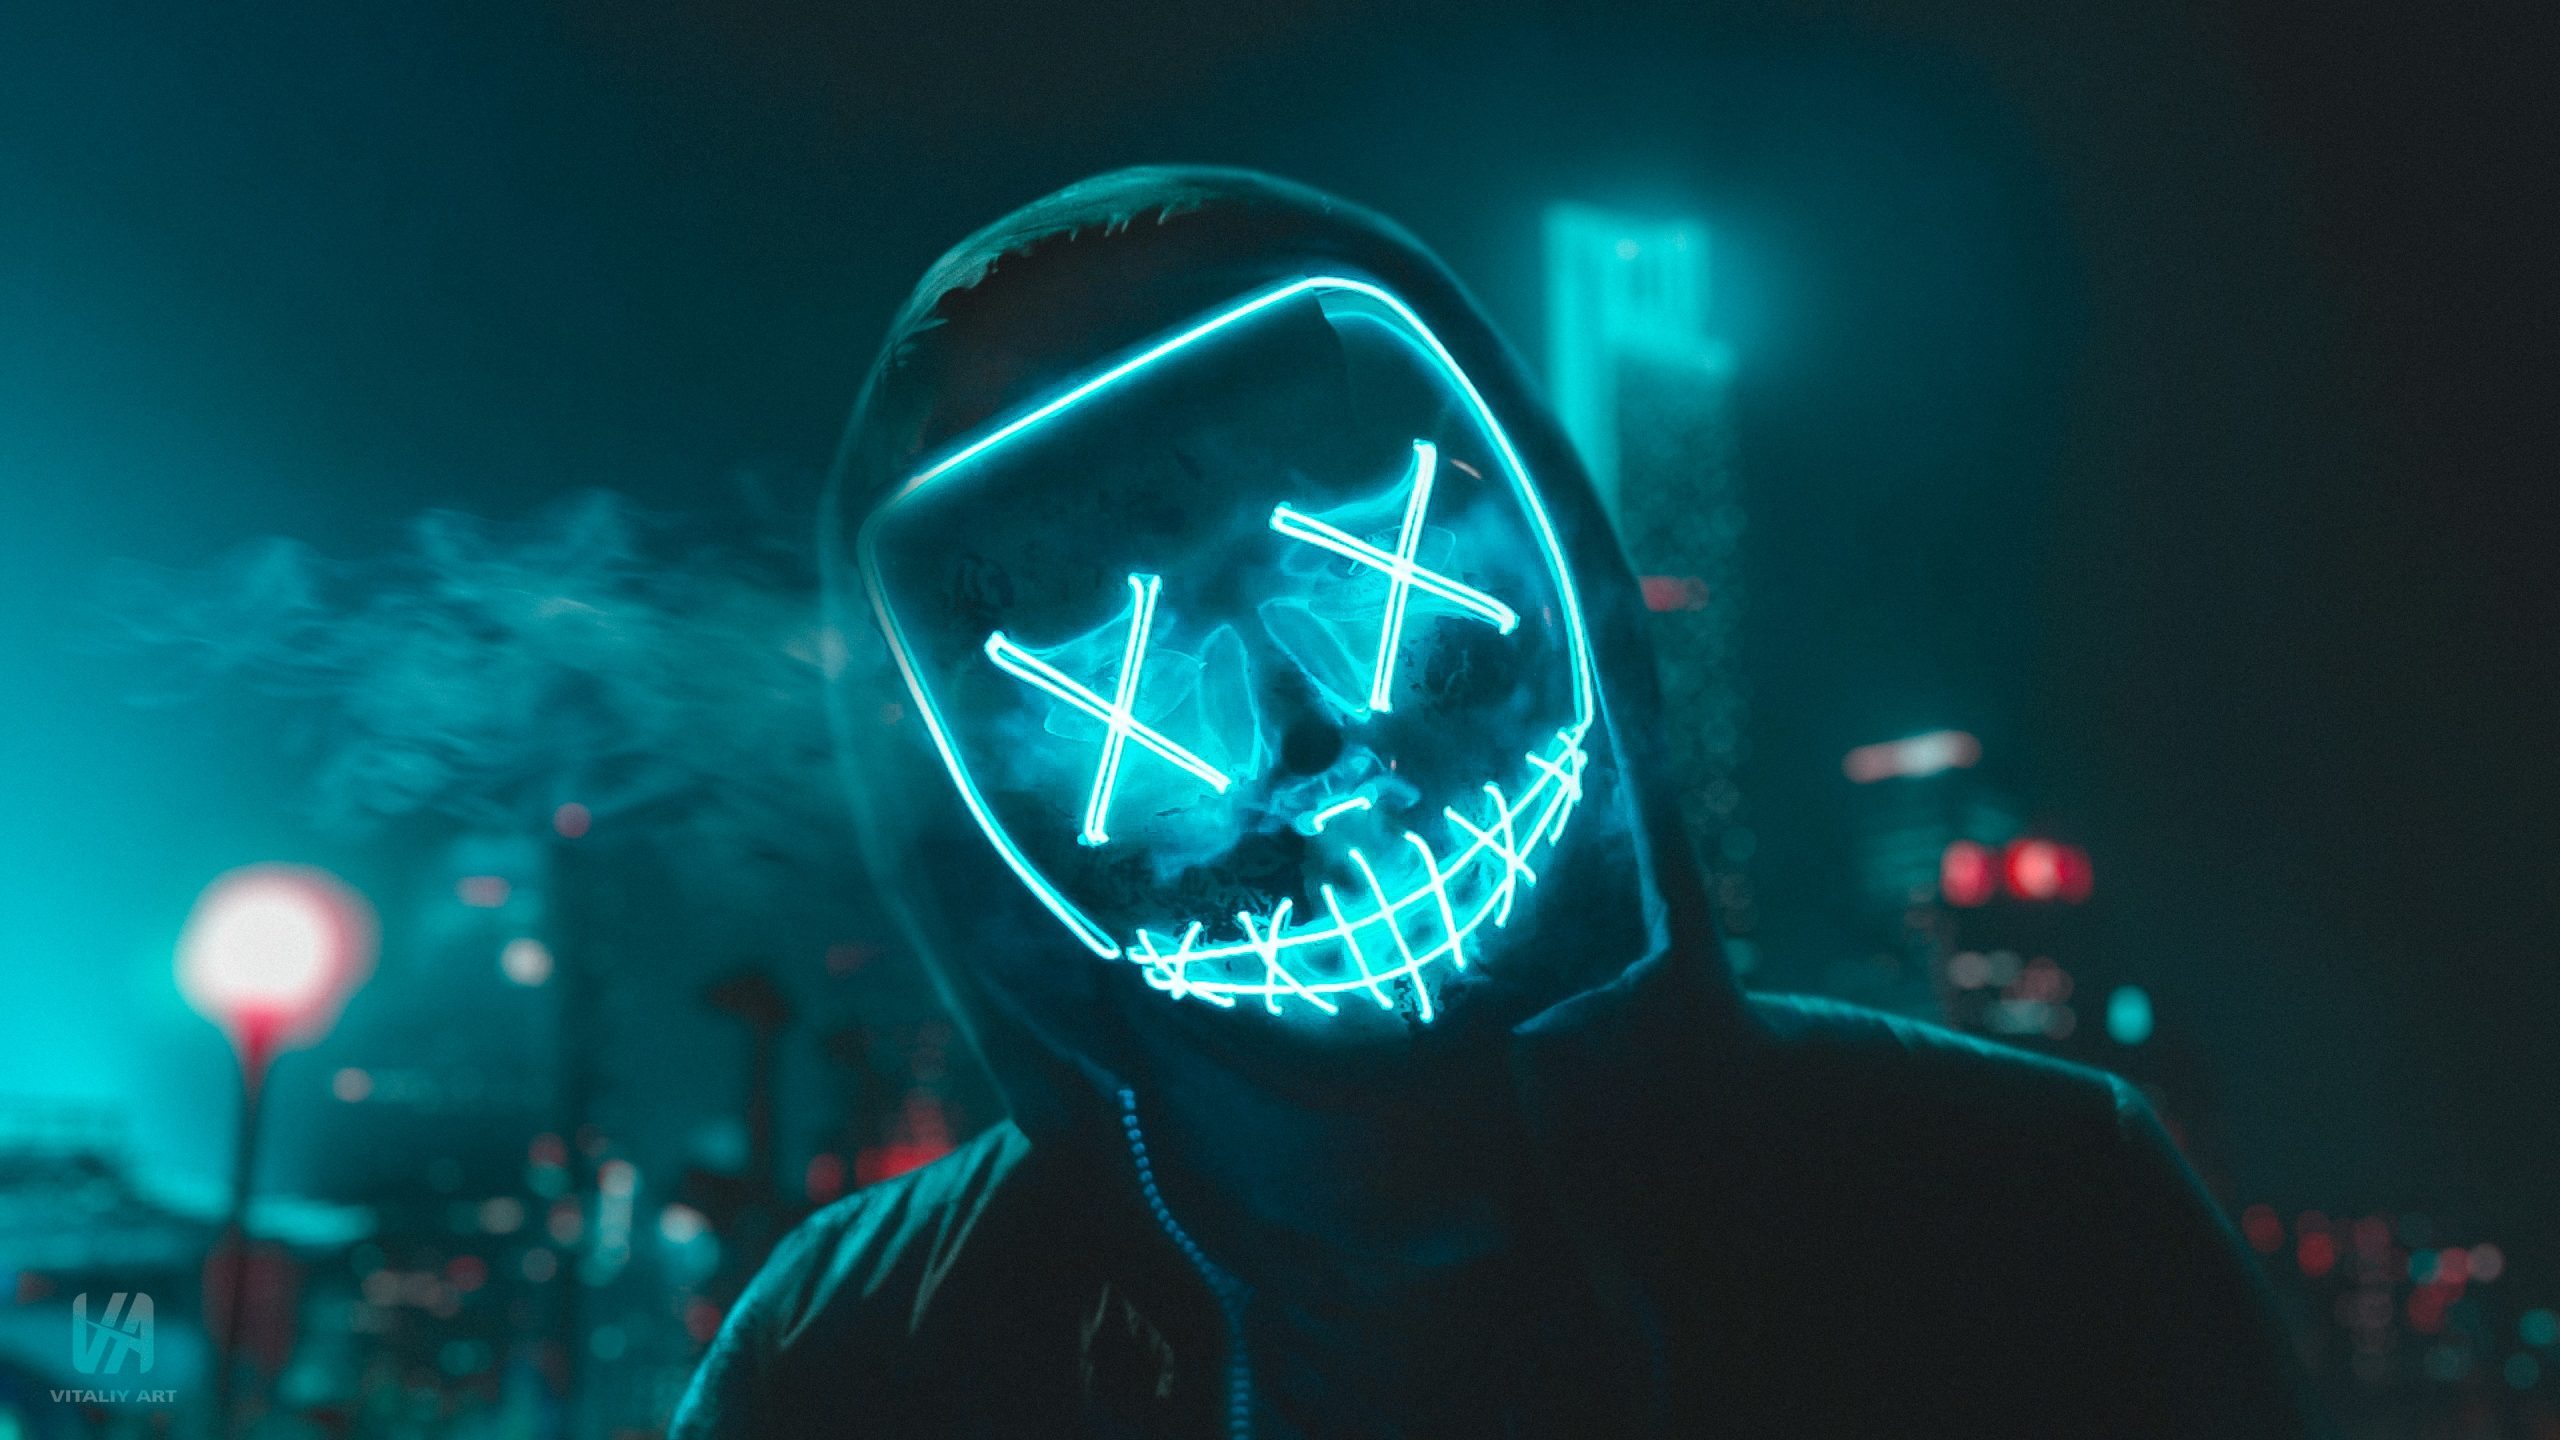 General 2560x1440 night city lights city lights atmosphere urban men outdoors men outdoors neon neon lights mask hoods blue retouching faceless smoke building cyber city Dark Cyberpunk futuristic cyan turquoise